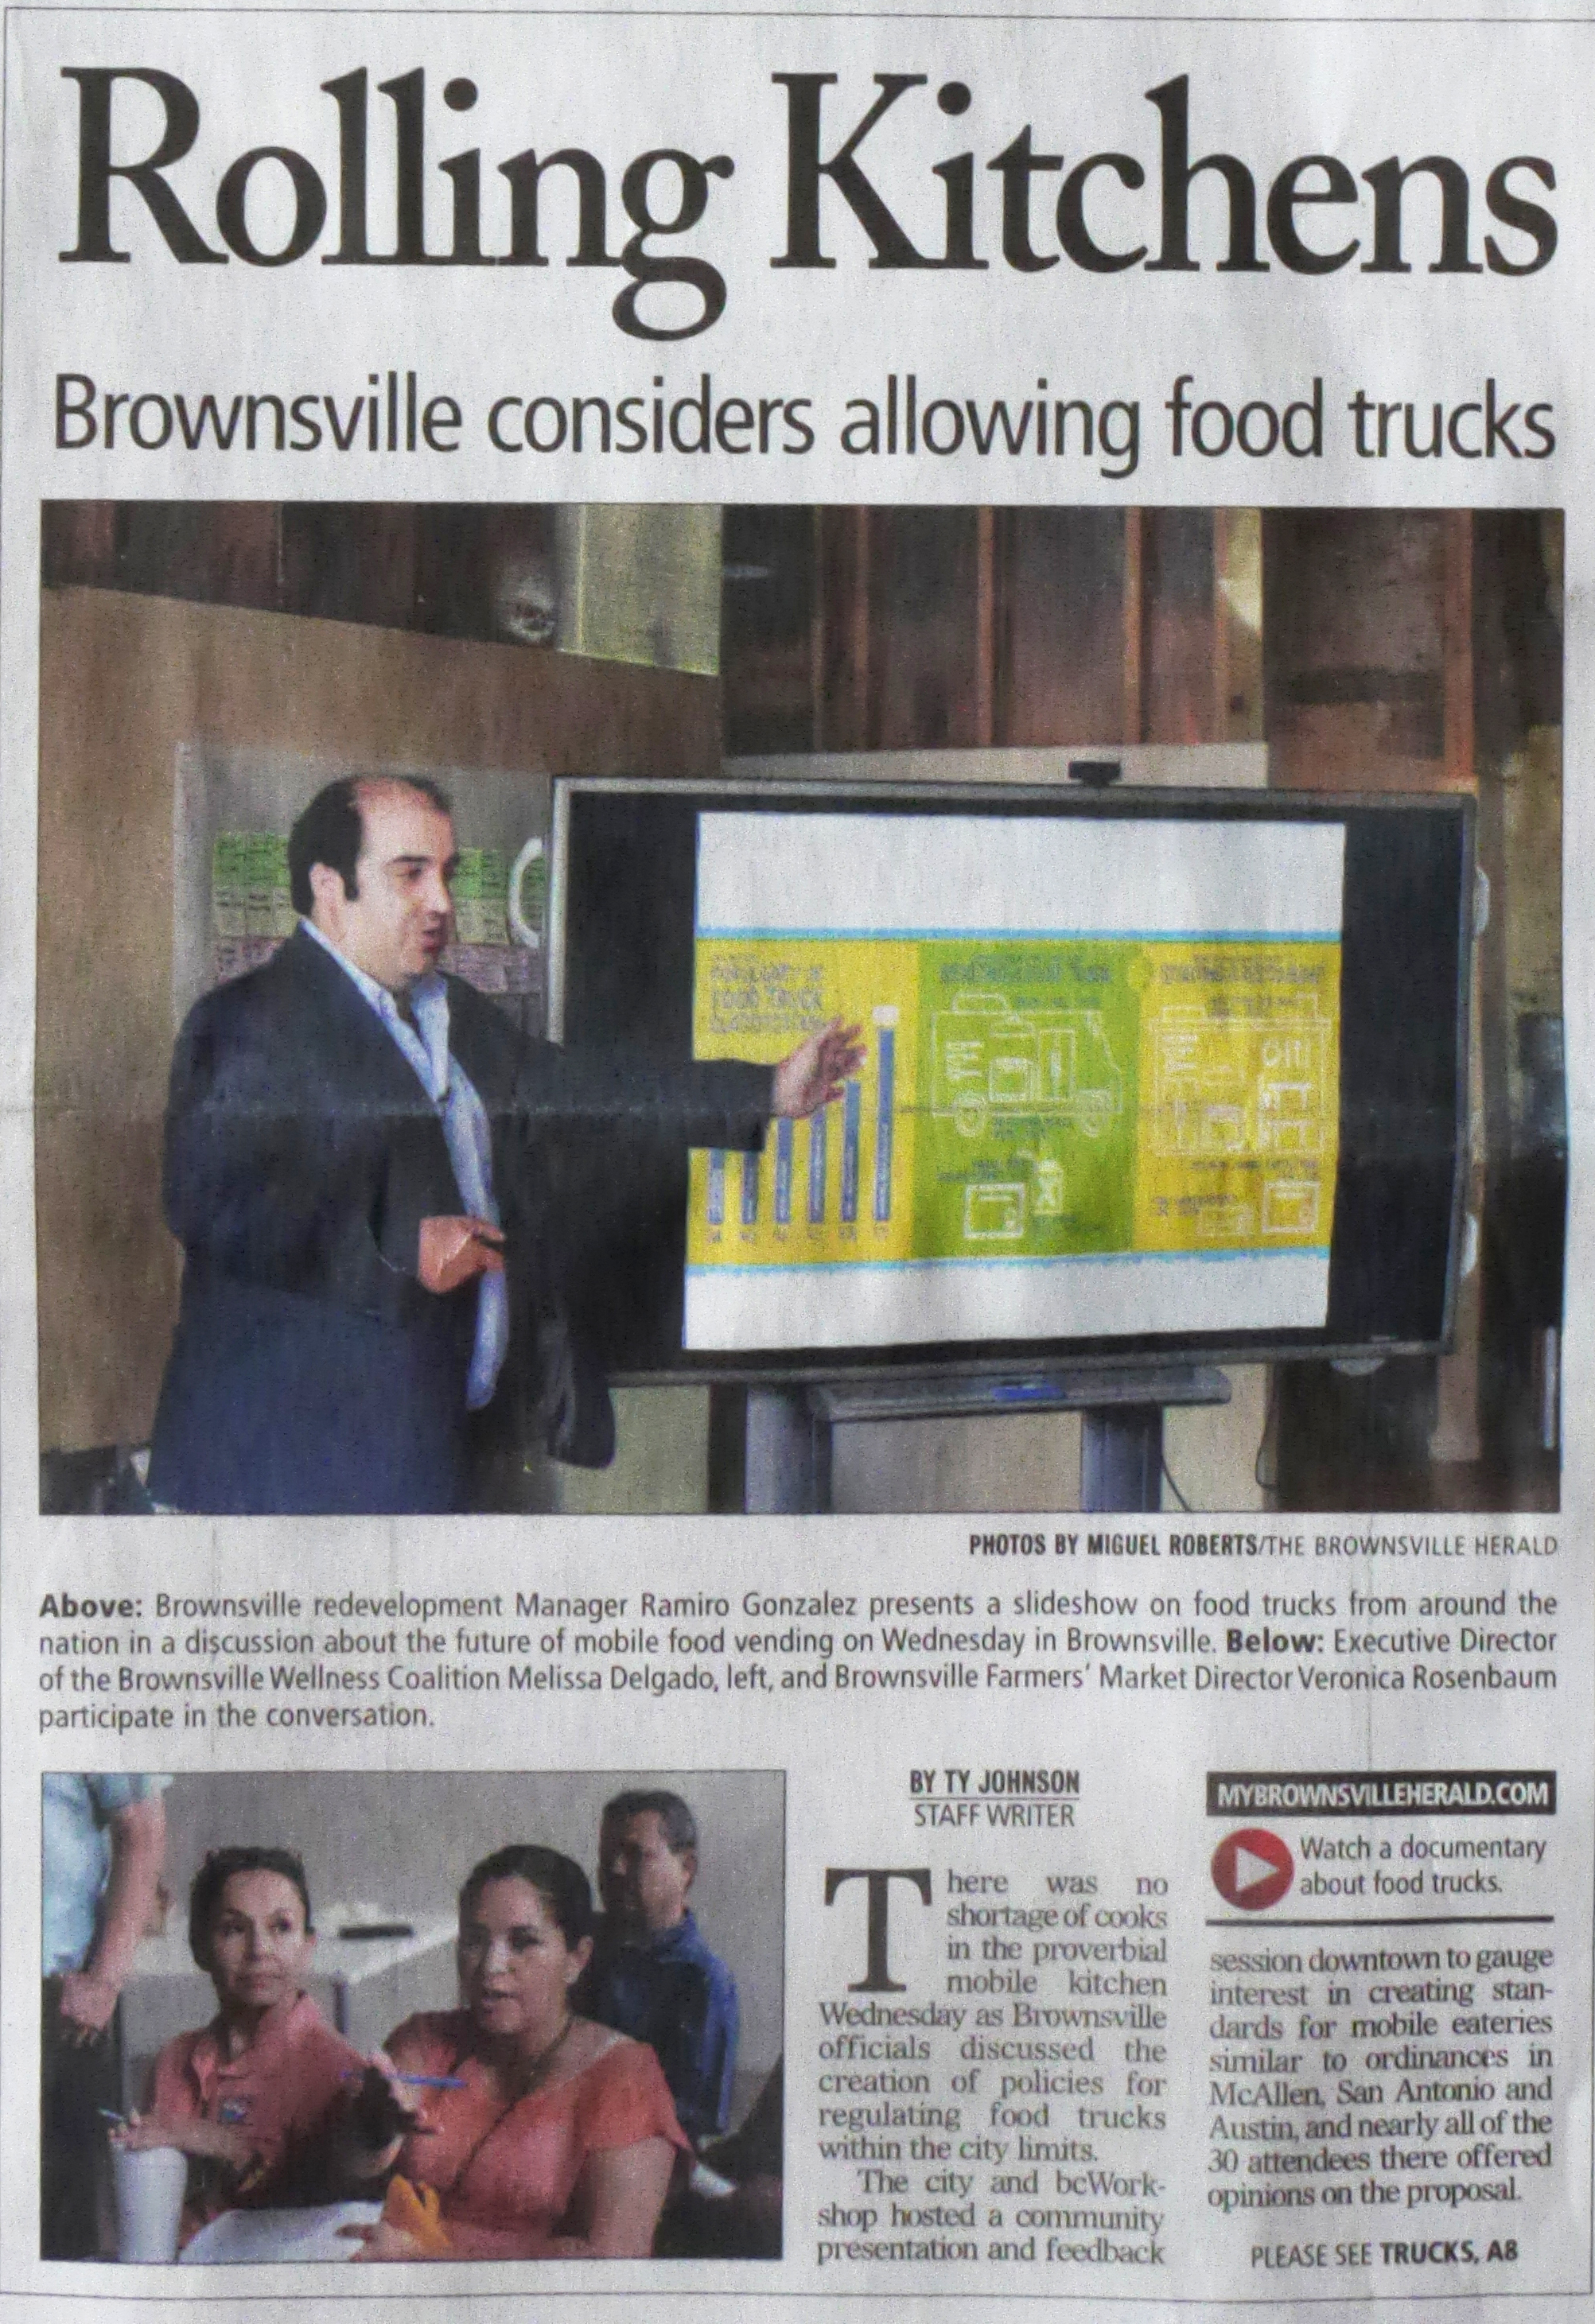 Front page of the Brownsville Herald.